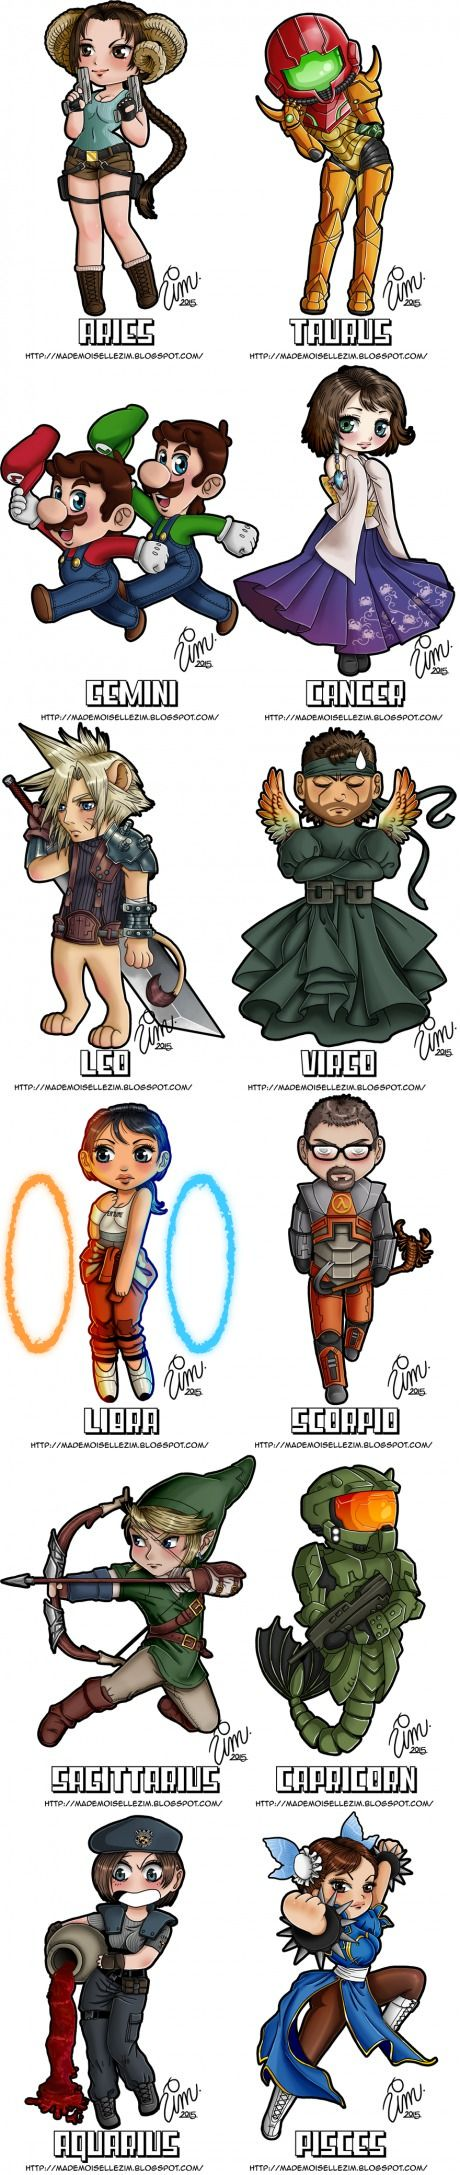 What Is Your Zodiac Sign ? Gamer Edition ----- I am Sagittarius!! I. AM. LINK!! :D More